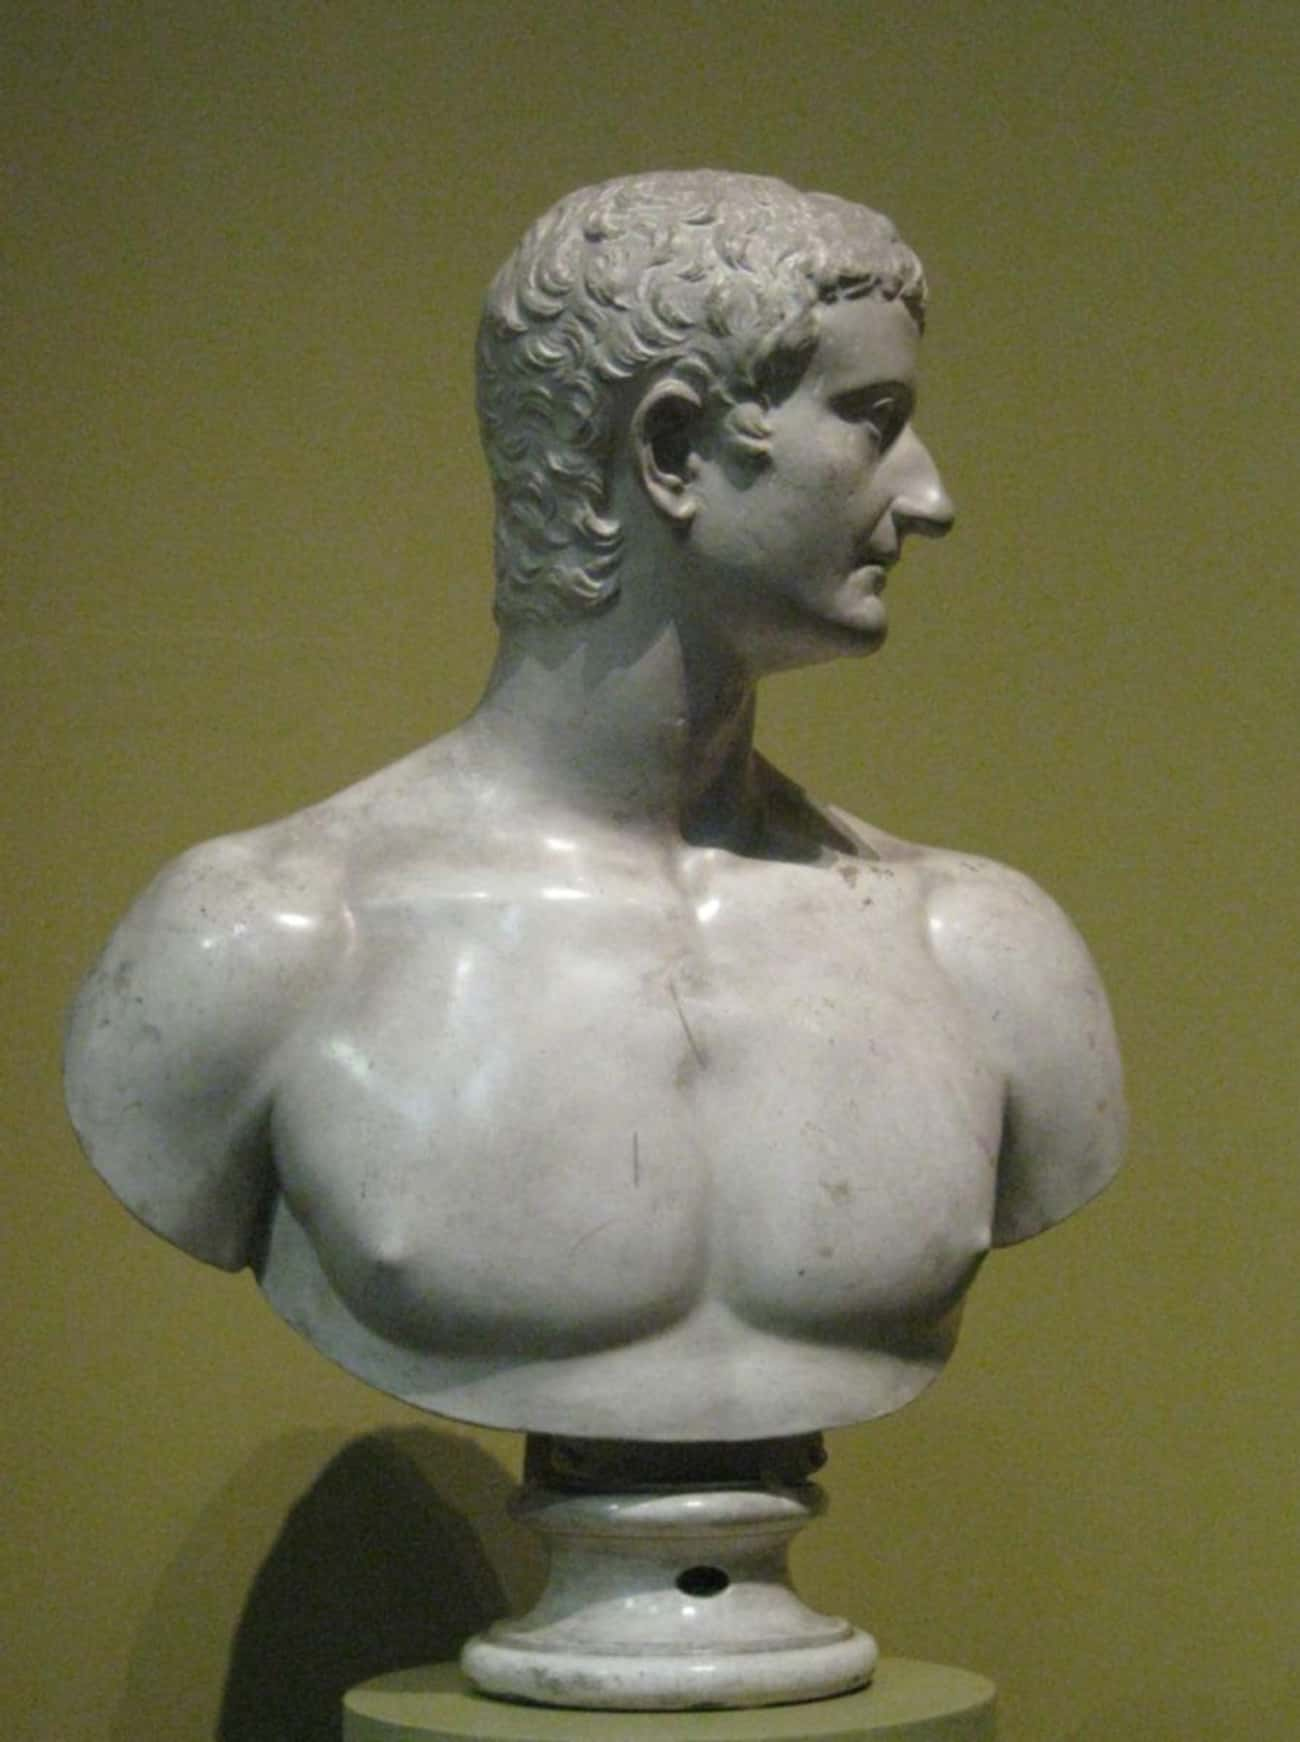 Tiberius Went Skinny Dipping w is listed (or ranked) 3 on the list The Craziest Ancient Rome Sex Scandals